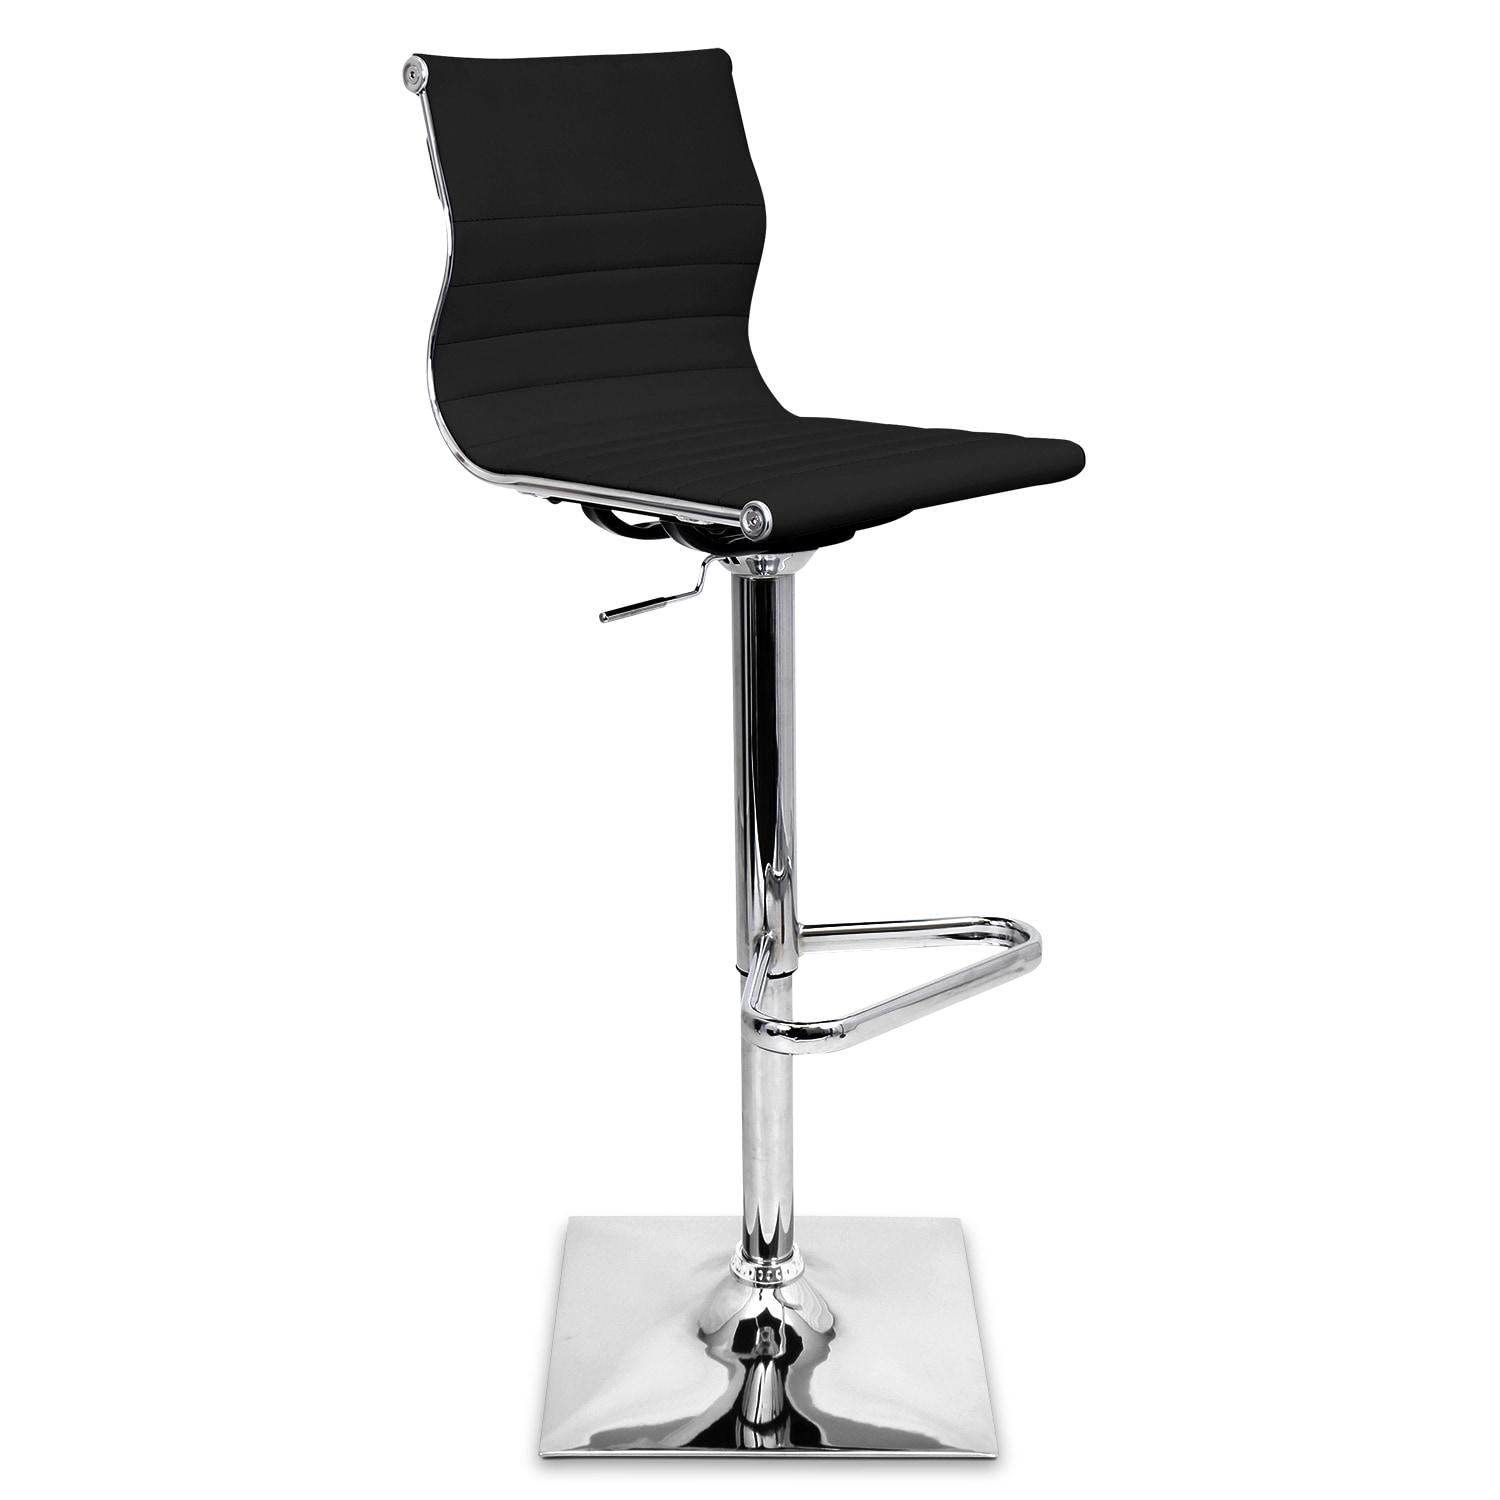 Pierce Adjustable Barstool - Black